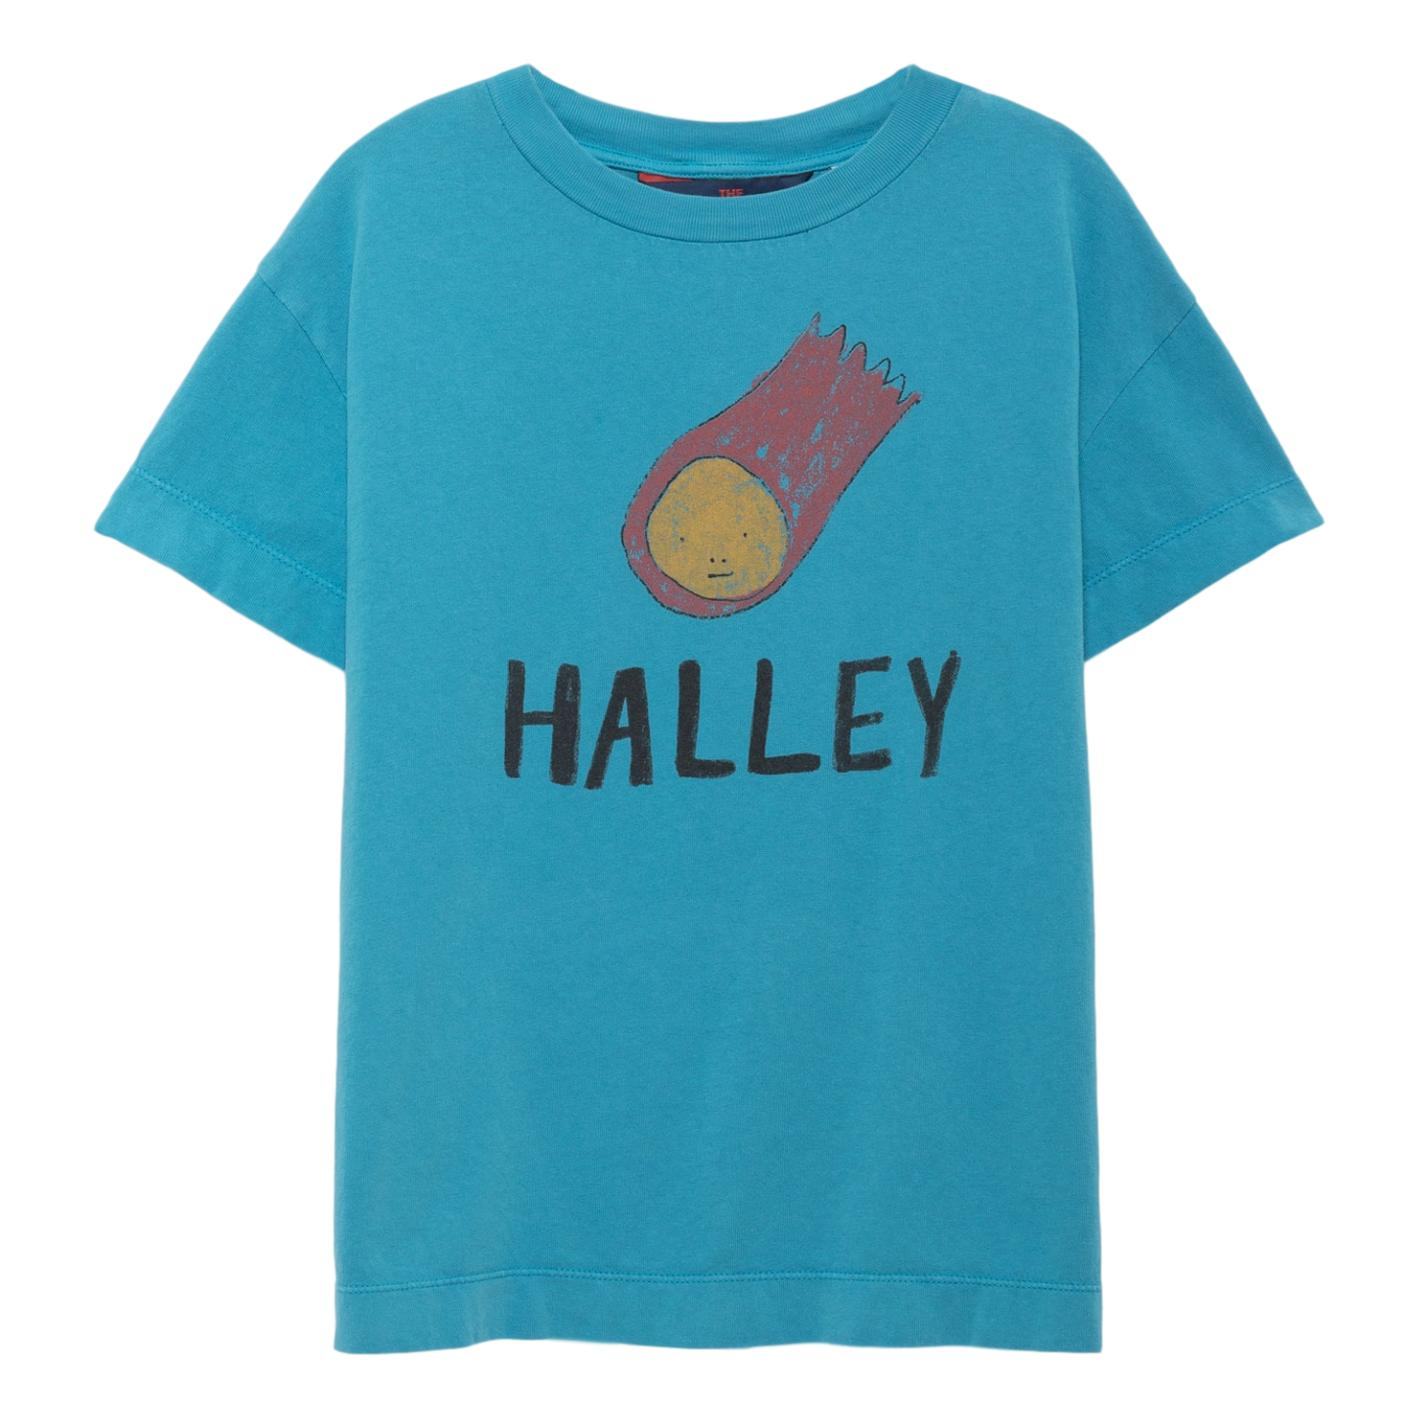 THE ANIMALS OBSERVATORY - Blue Halley Rooster Kids Tee